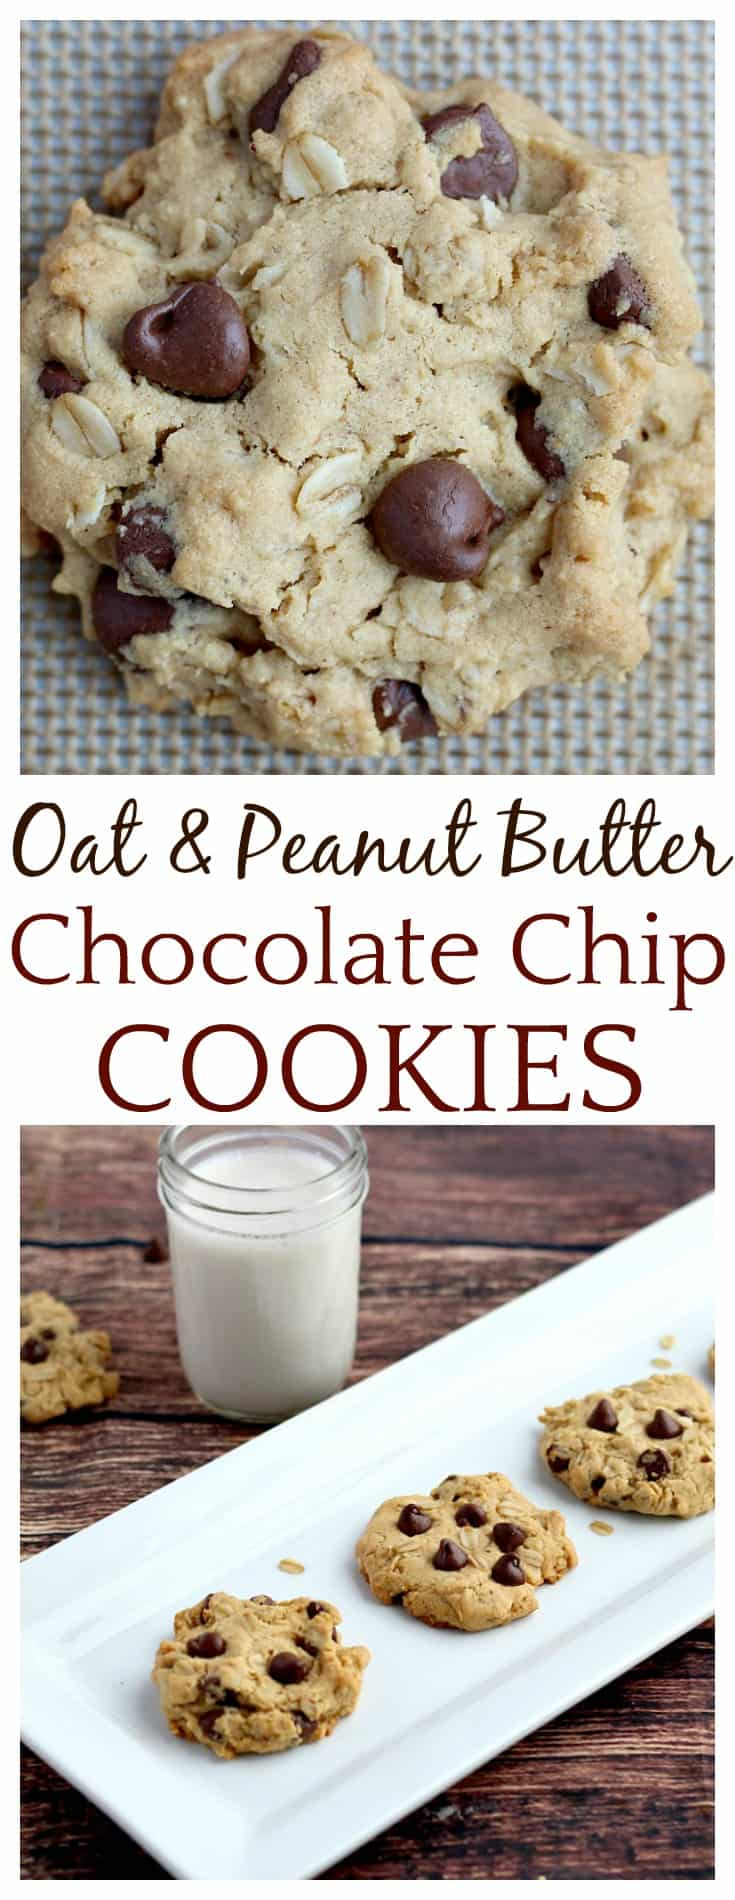 These Oat & Peanut Butter Chocolate Chip Cookies are my new favorite go-to cookie recipe! They are full of classic peanut butter and chocolate flavors. The oats give them texture while adding some whole grain goodness to the mix as well! If you try them, you are sure to love them! | #cookies #baking #chocolatechipcookies #peanutbutter #peanutbuttercookies #DLB